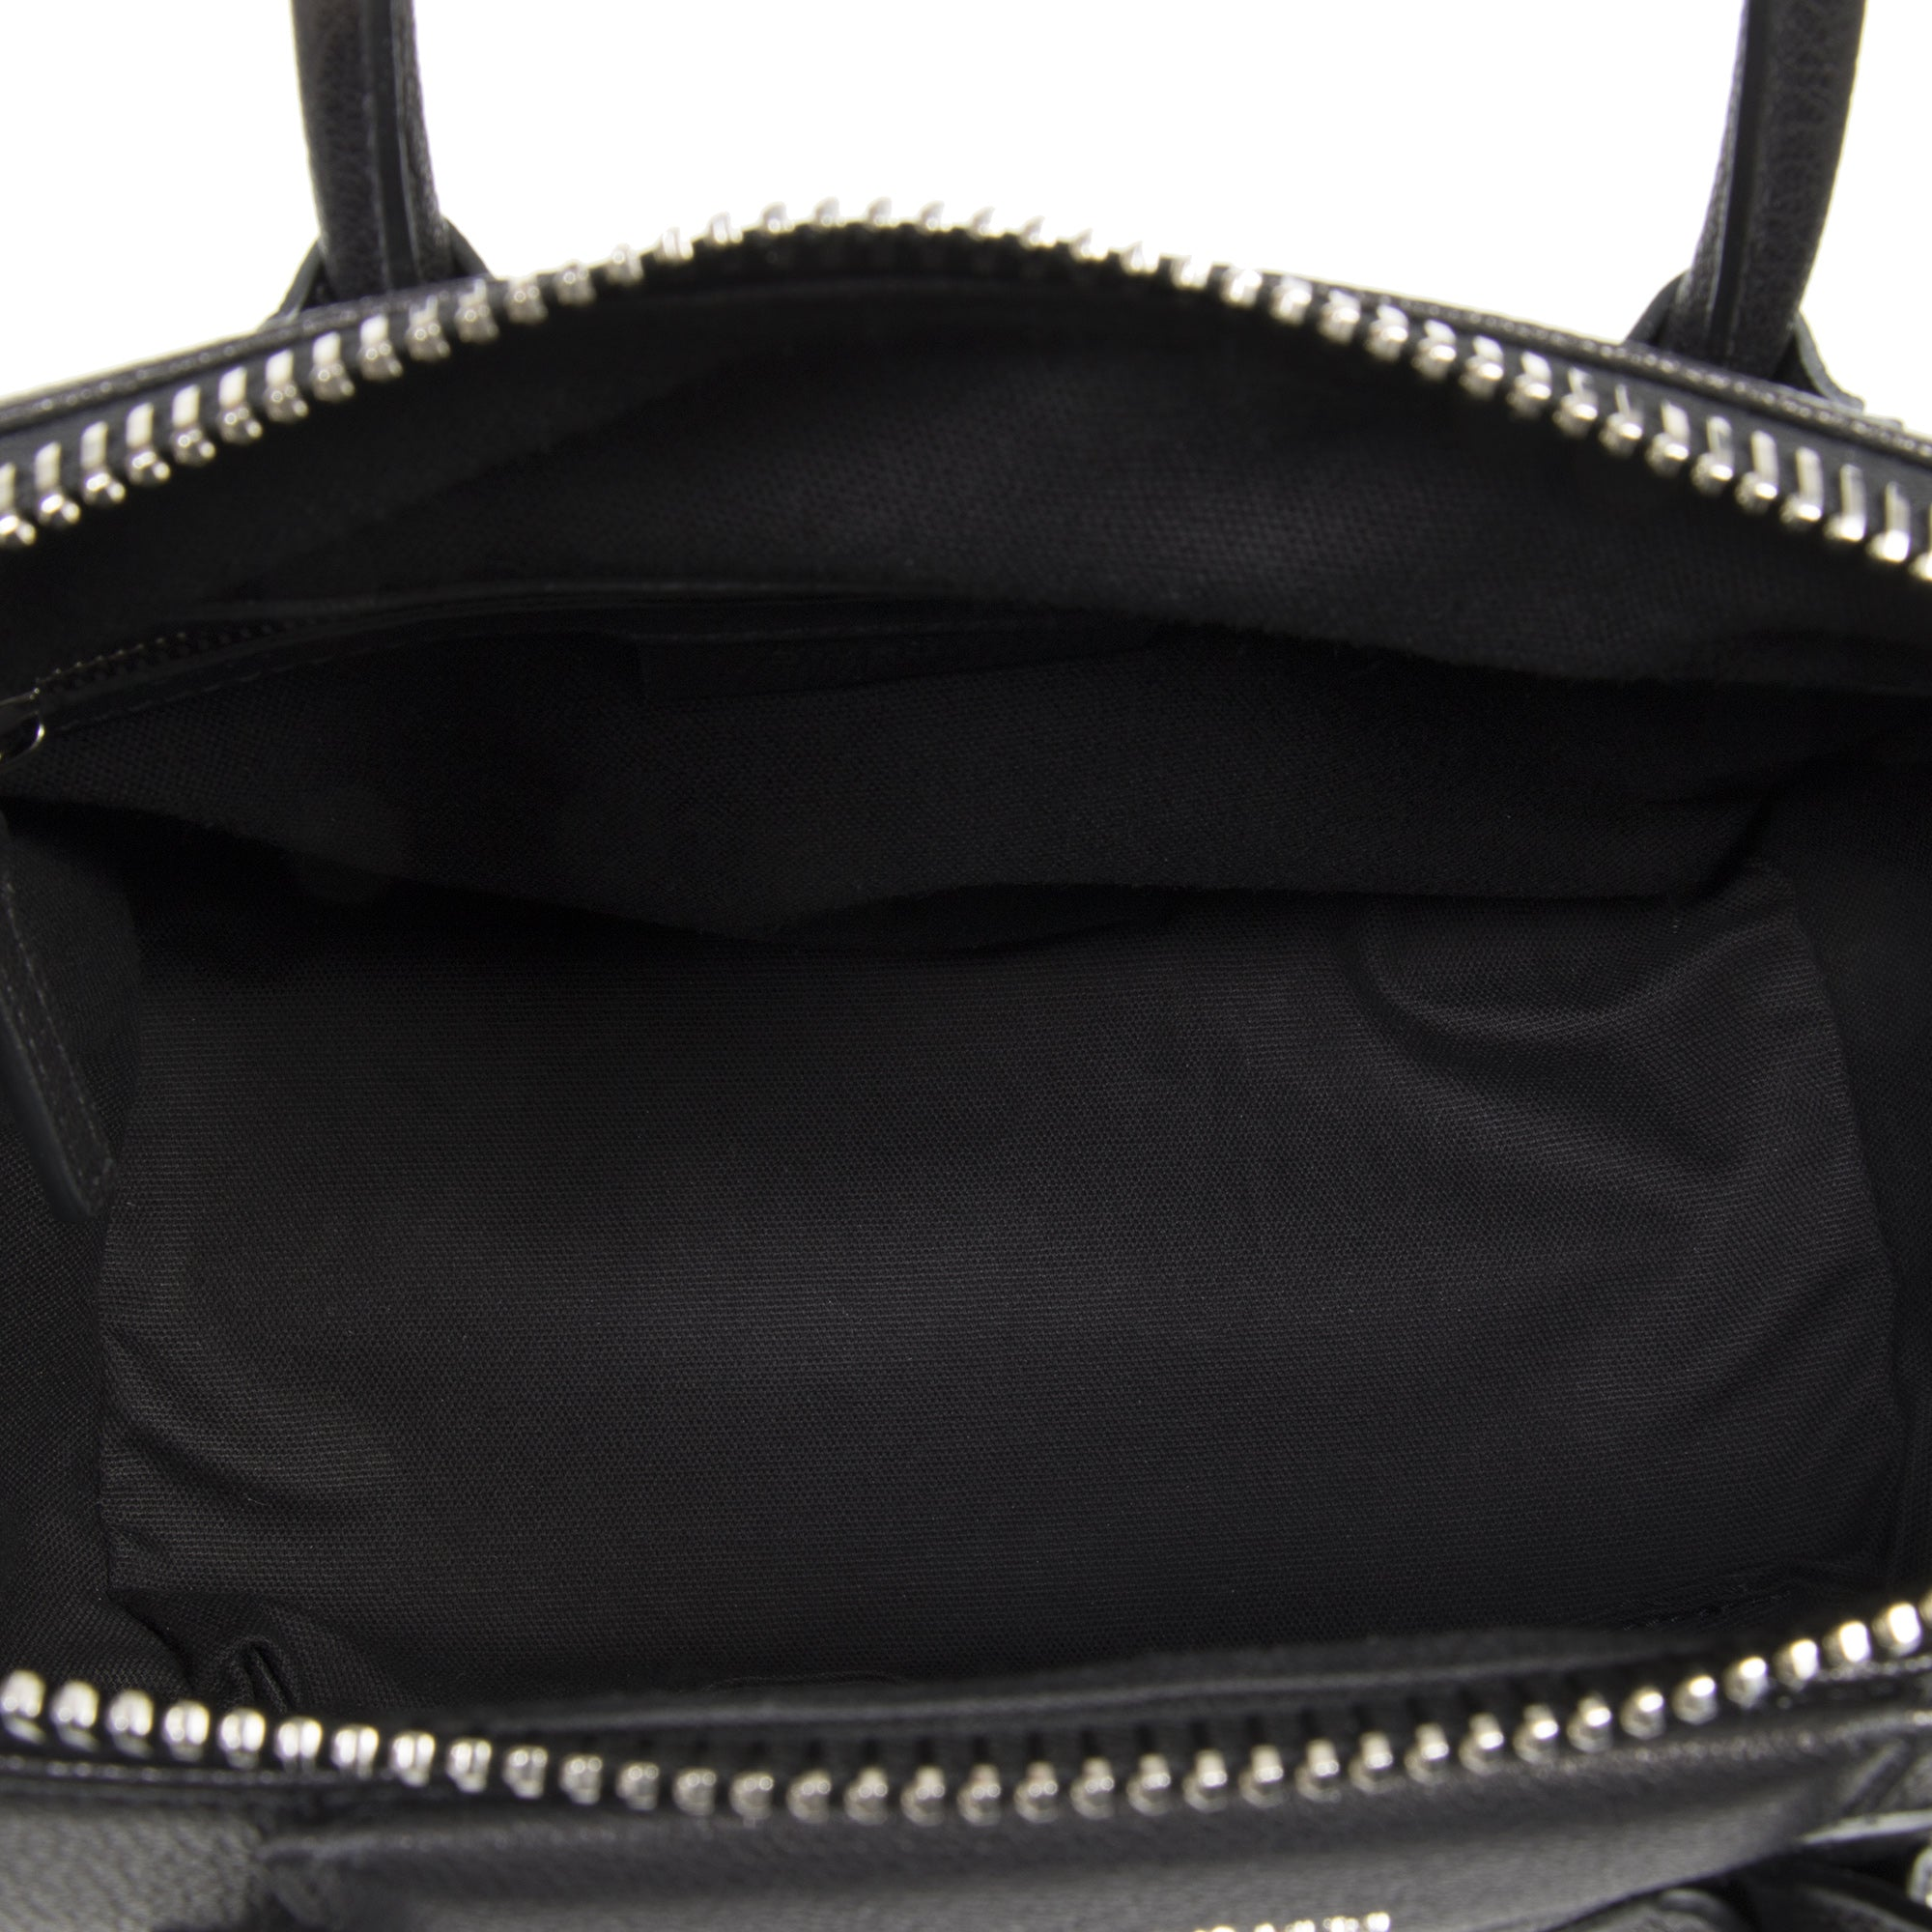 Givenchy Antigona Sugar Goatskin Leather Satchel Bag | Matte Black with Silver Hardware | Small